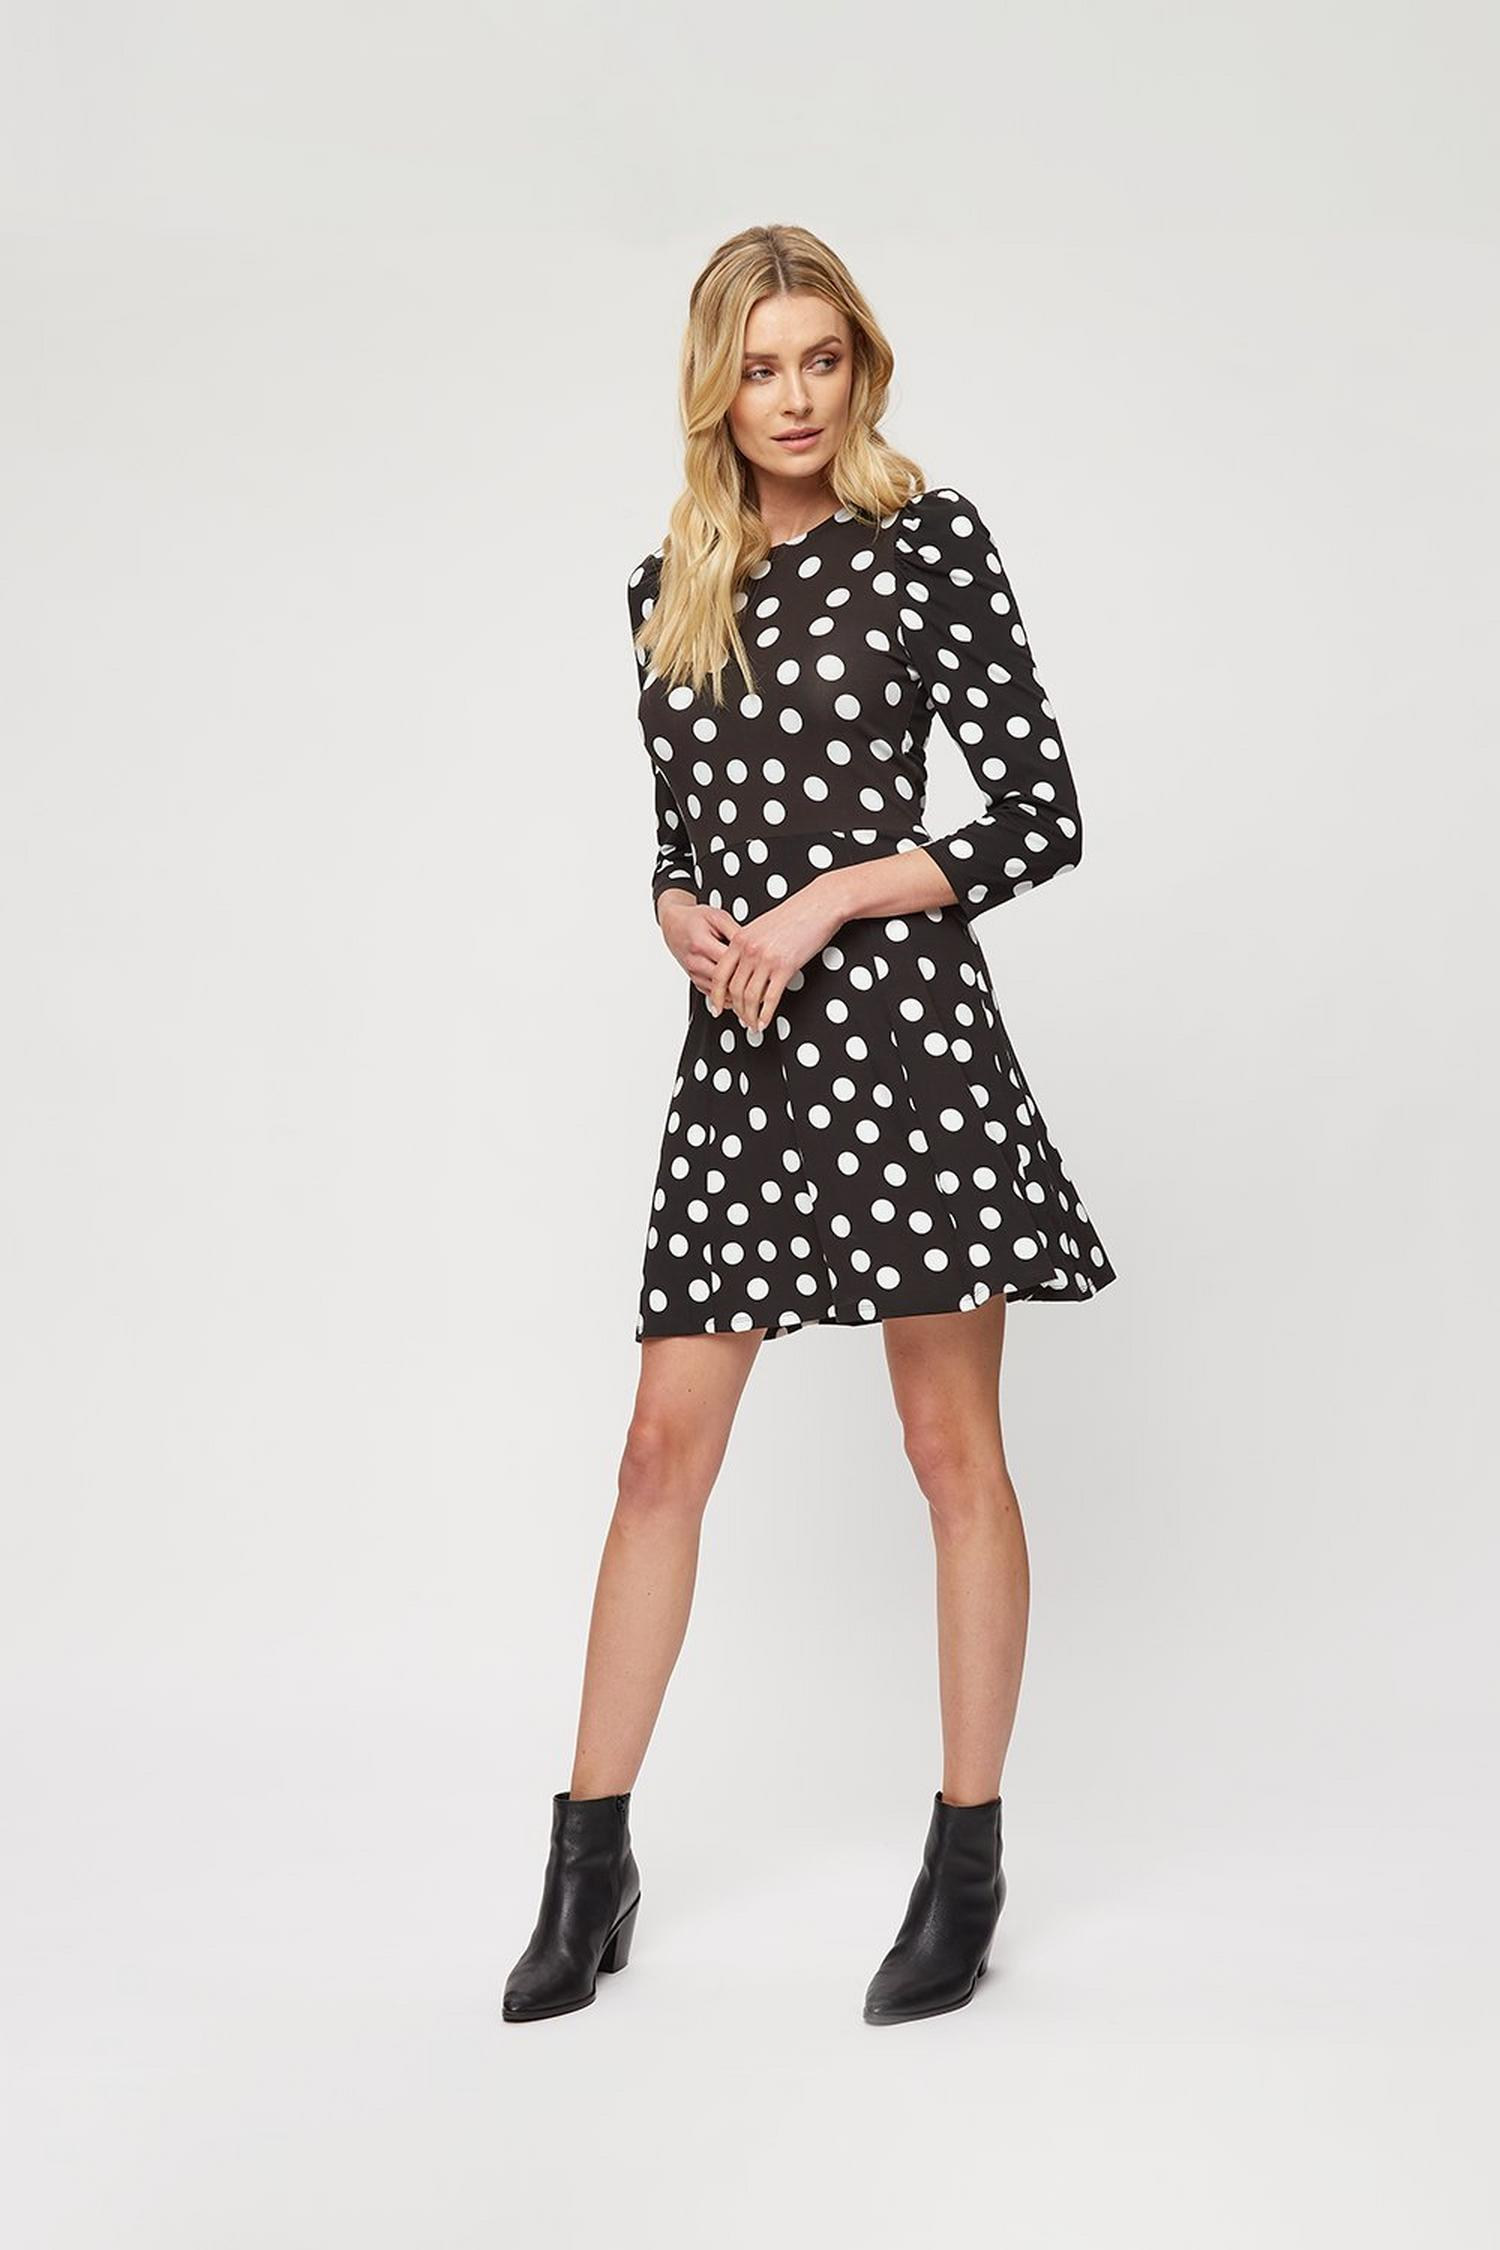 105 Black Spot Fit And Flare Dress image number 2